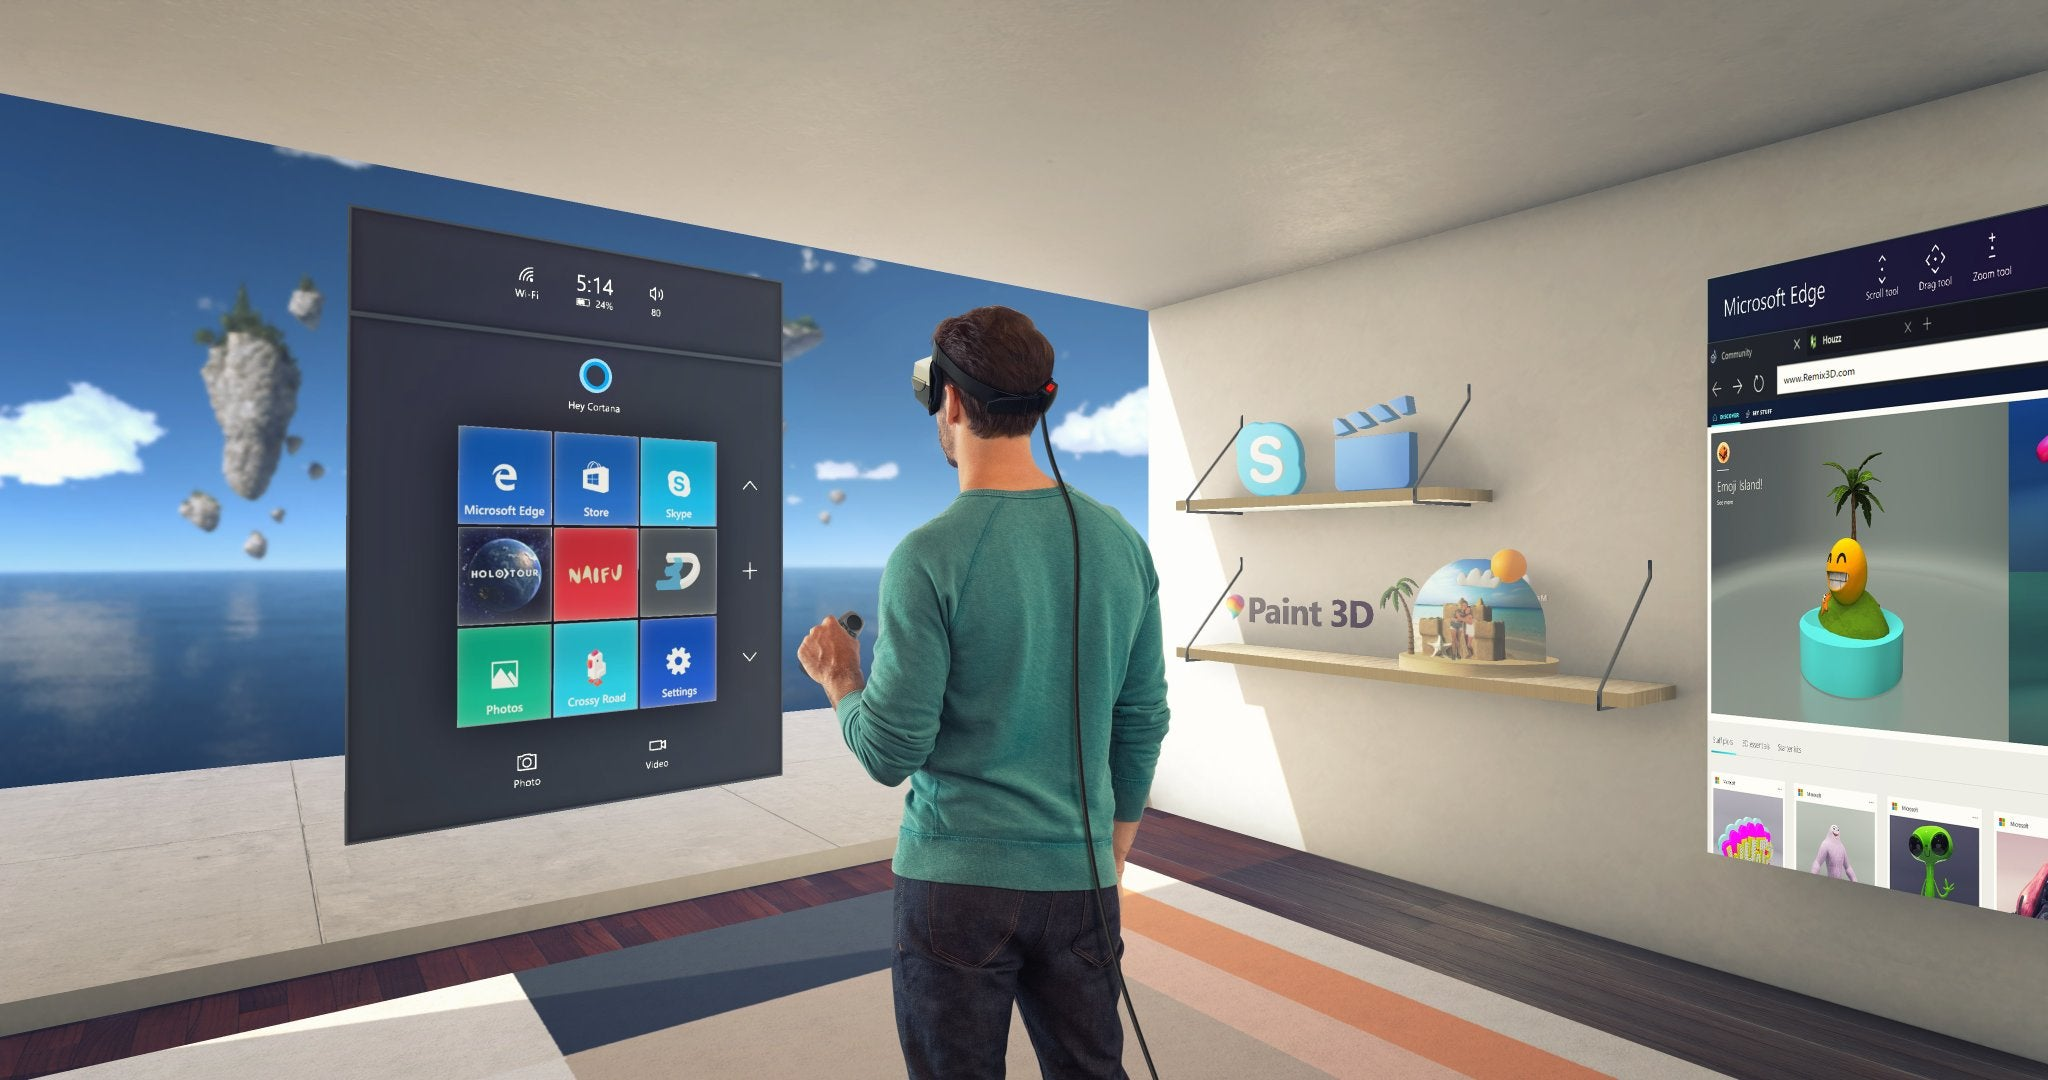 The Windows 10 Creators Update's best new features: Paint 3D, Game Mode, privacy tweaks, and ...